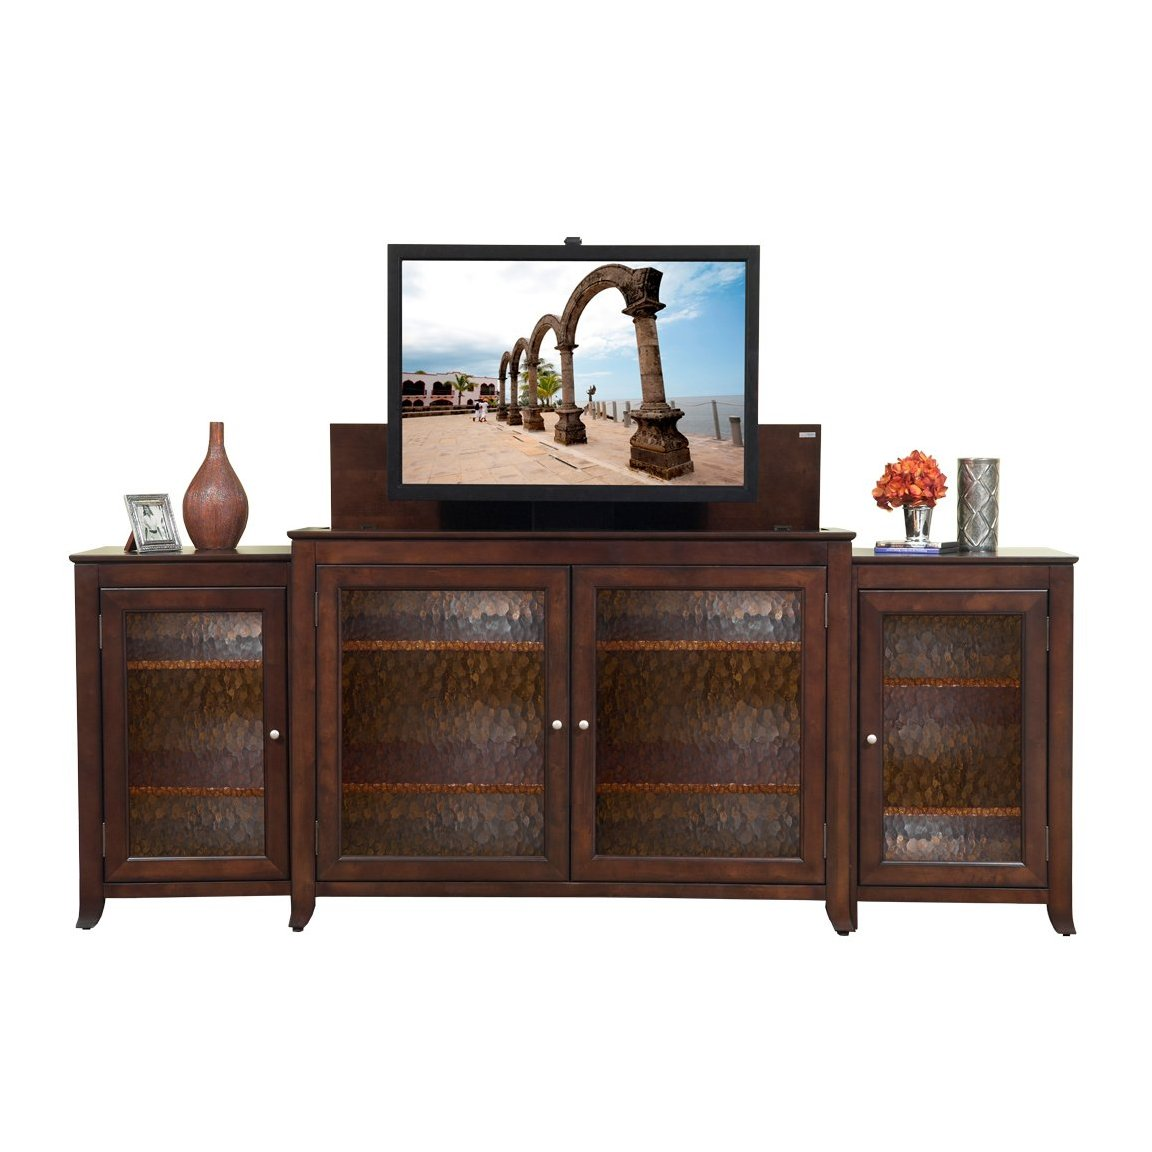 Pop up tv cabinet guide for cheap pop up tv cabinet online for Cupboard cabinet